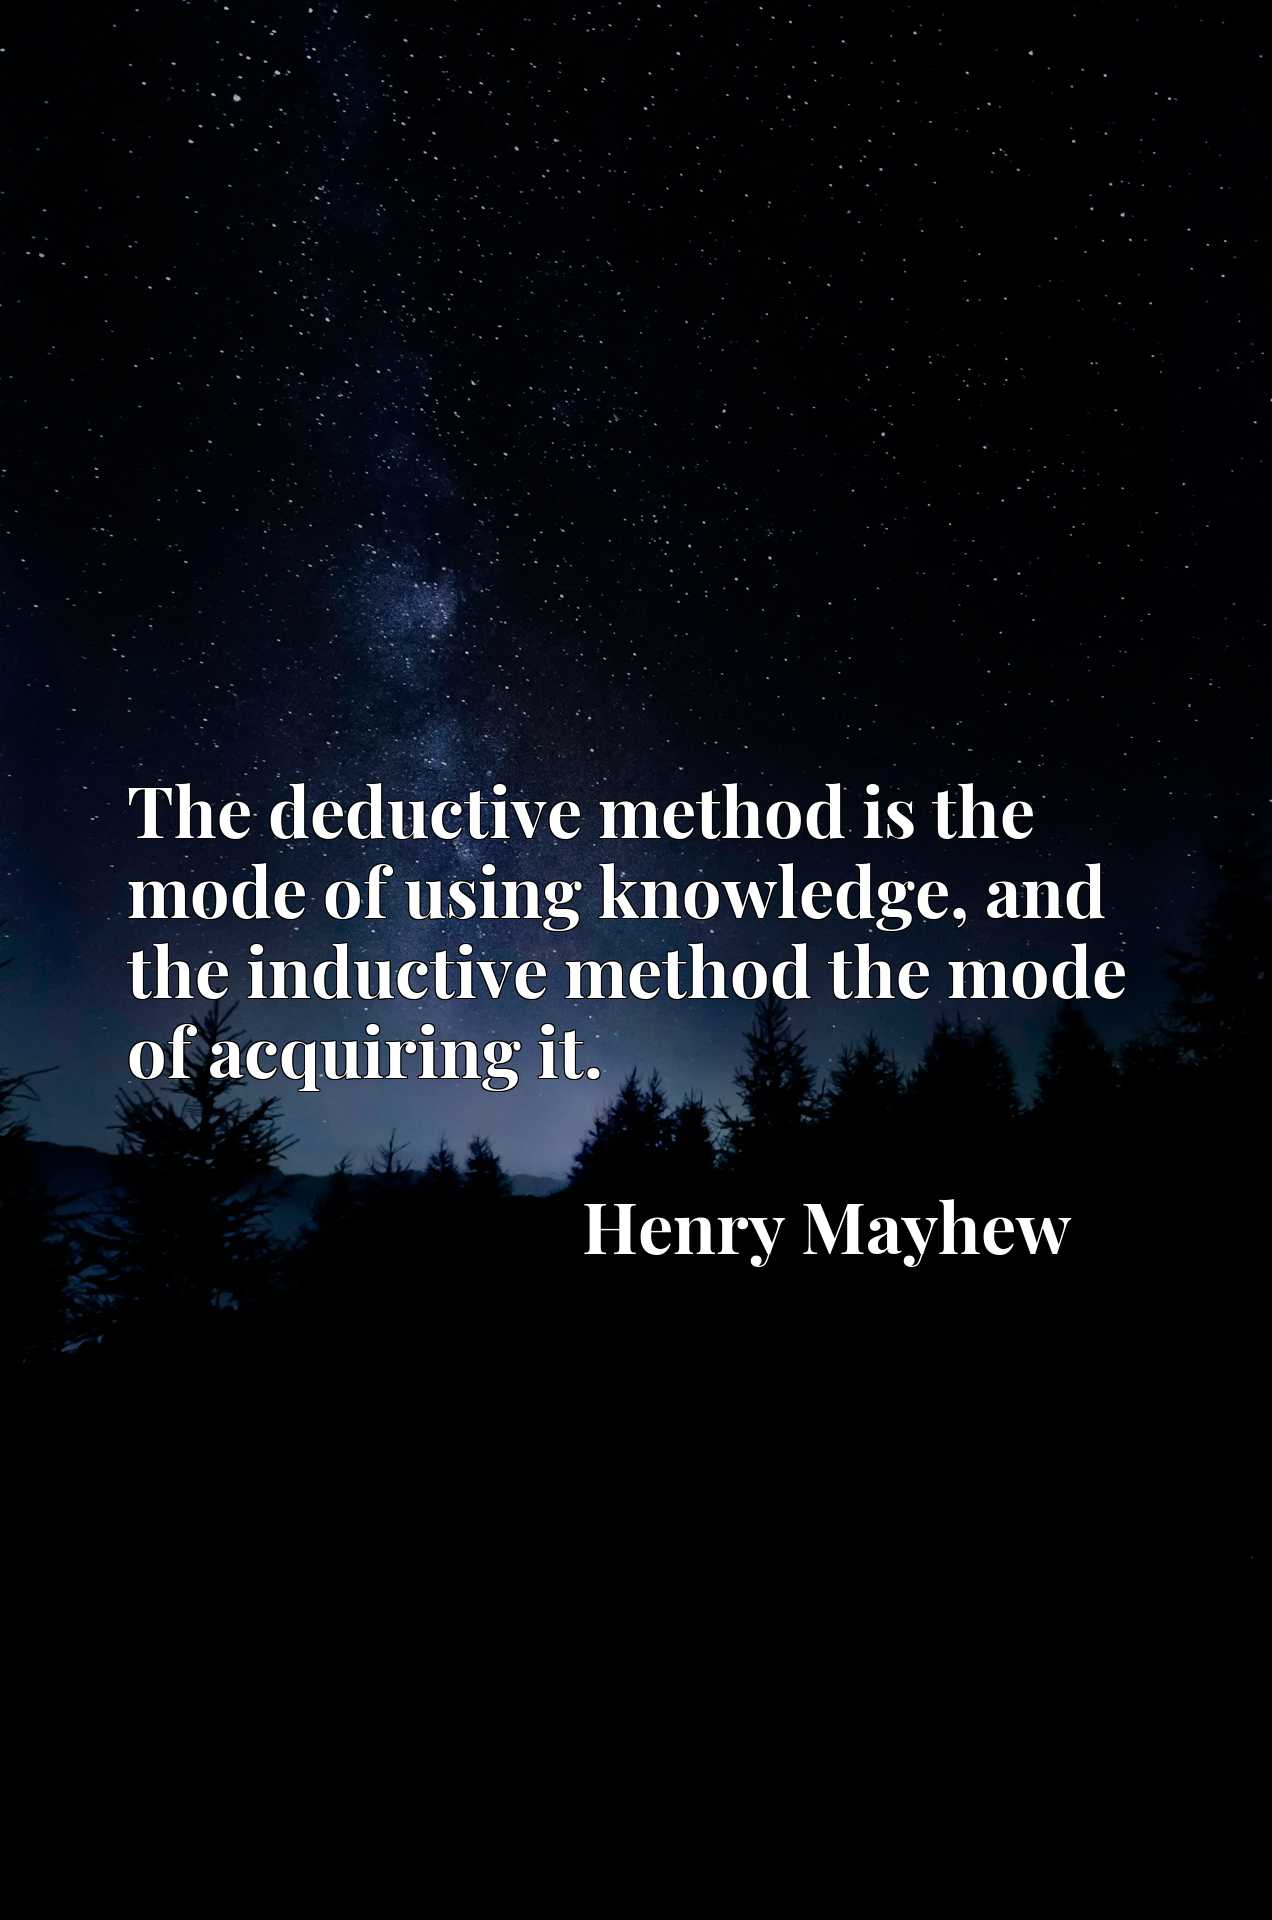 The deductive method is the mode of using knowledge, and the inductive method the mode of acquiring it.